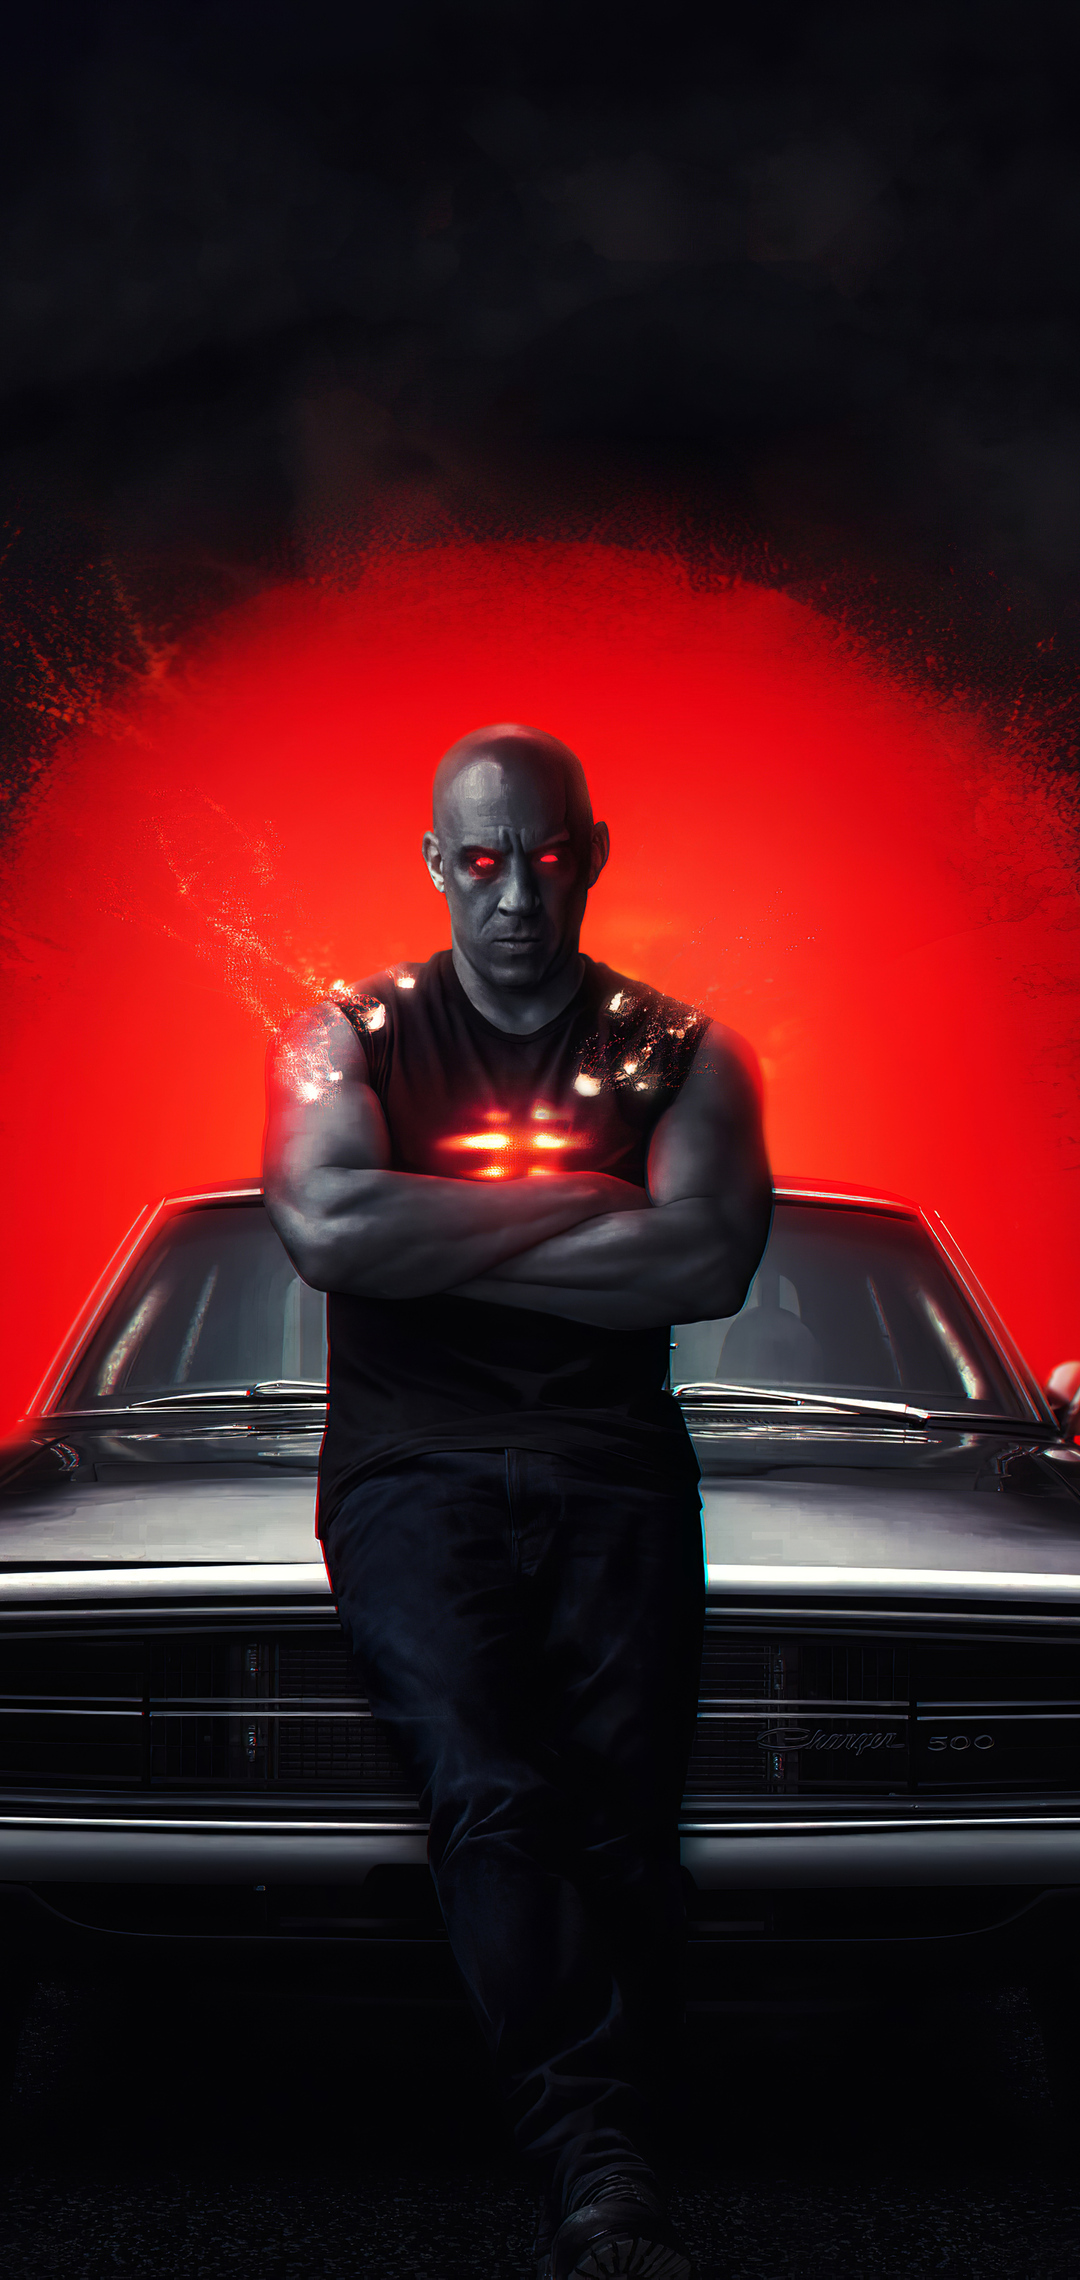 bloodshot-x-fast-and-furious-9-movie-4k-2020-2k.jpg